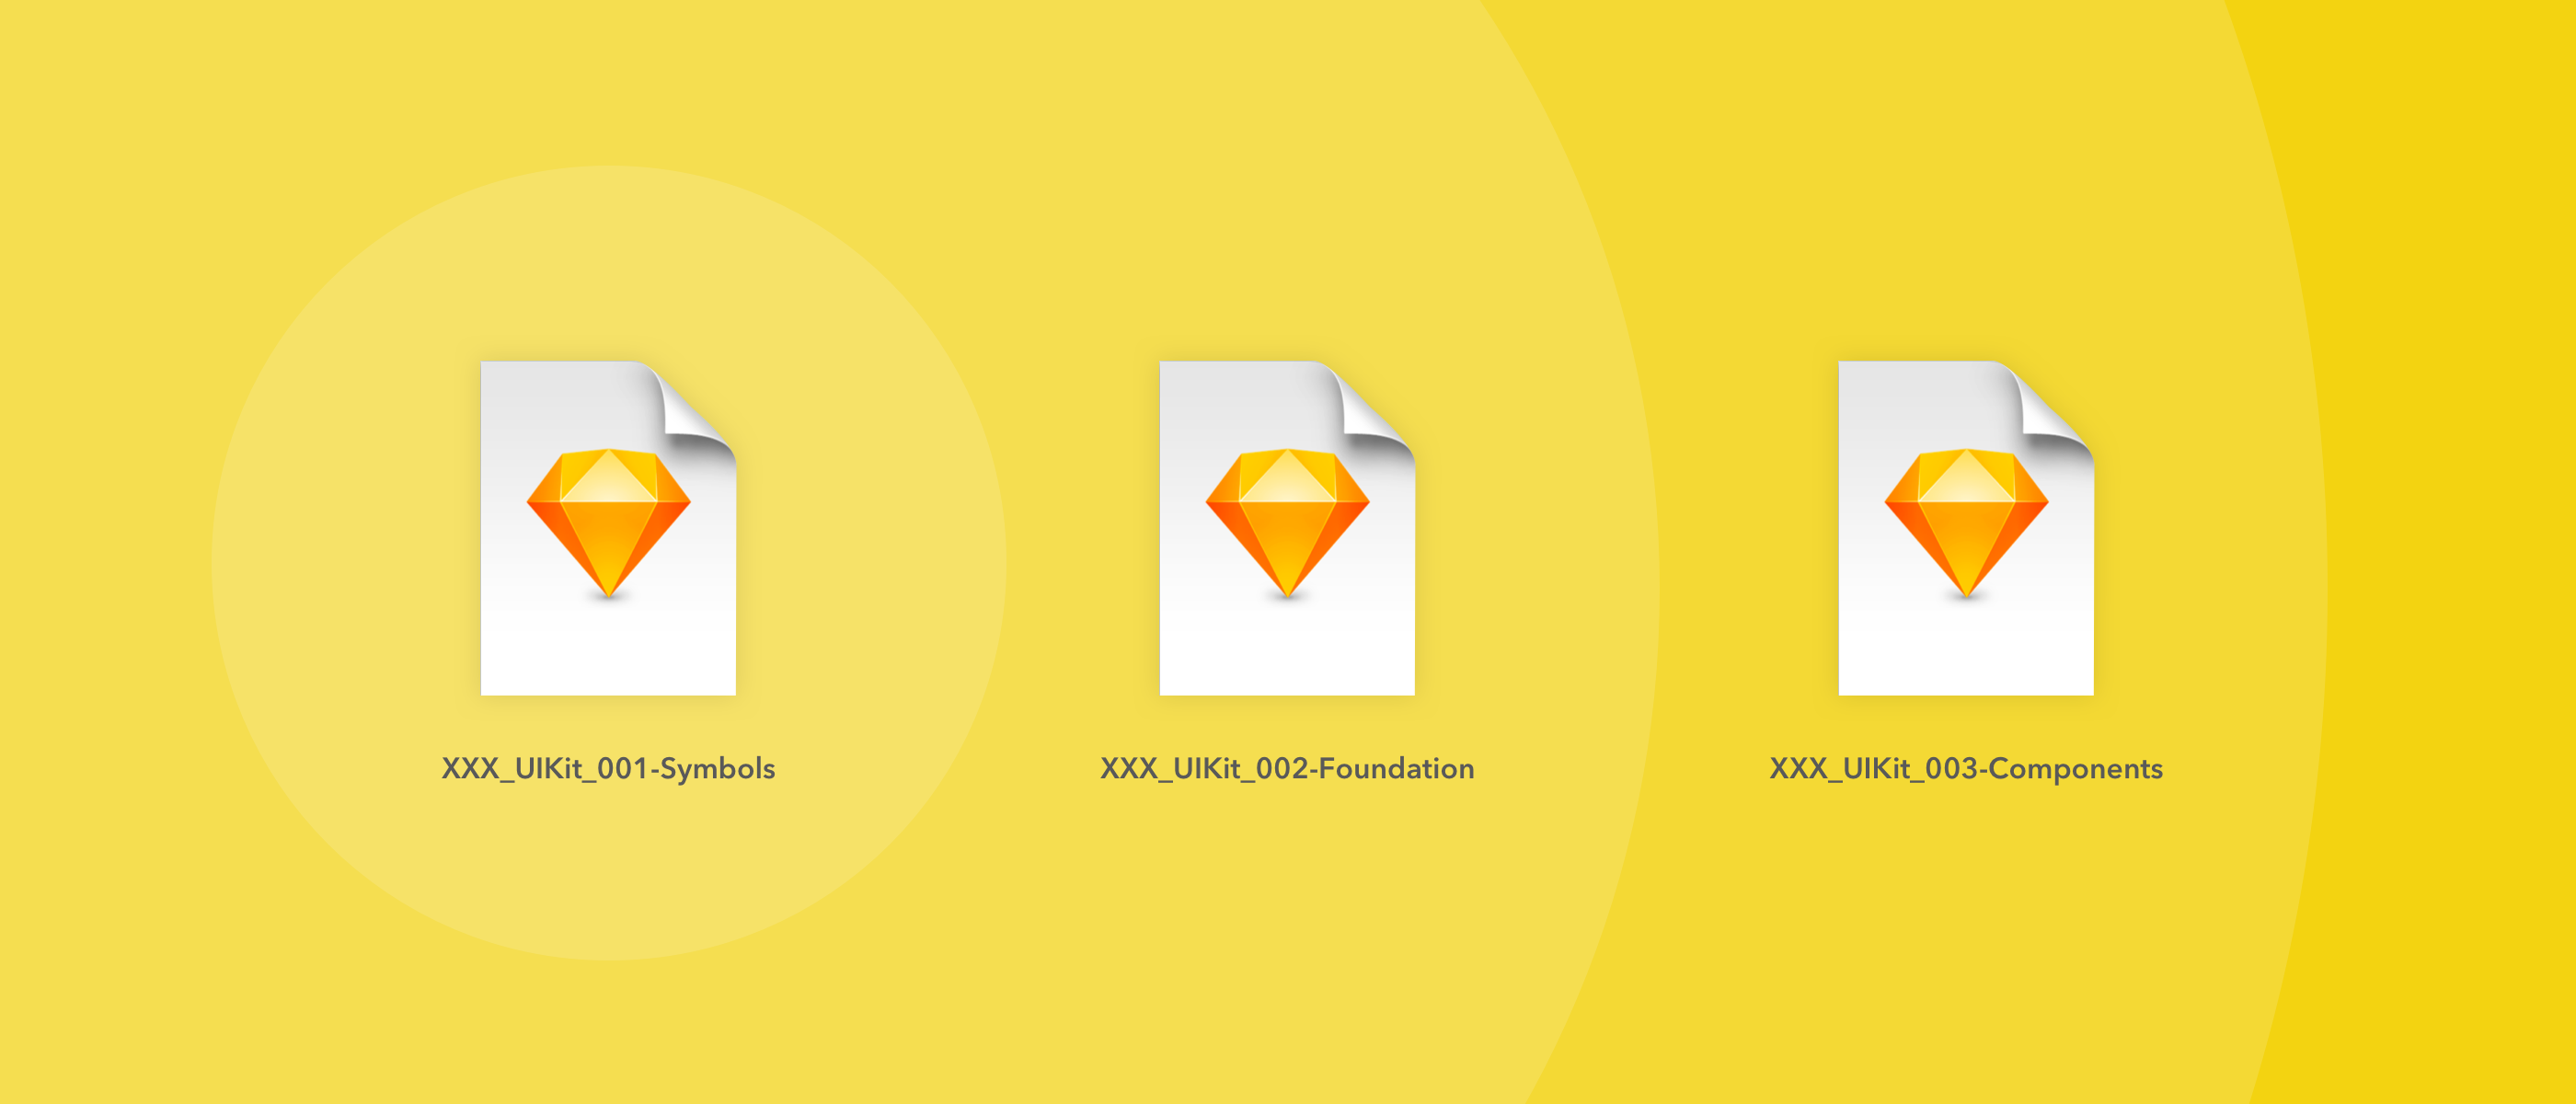 Our Sketch file organization starting with Symbols, and going to Foundation and Components.